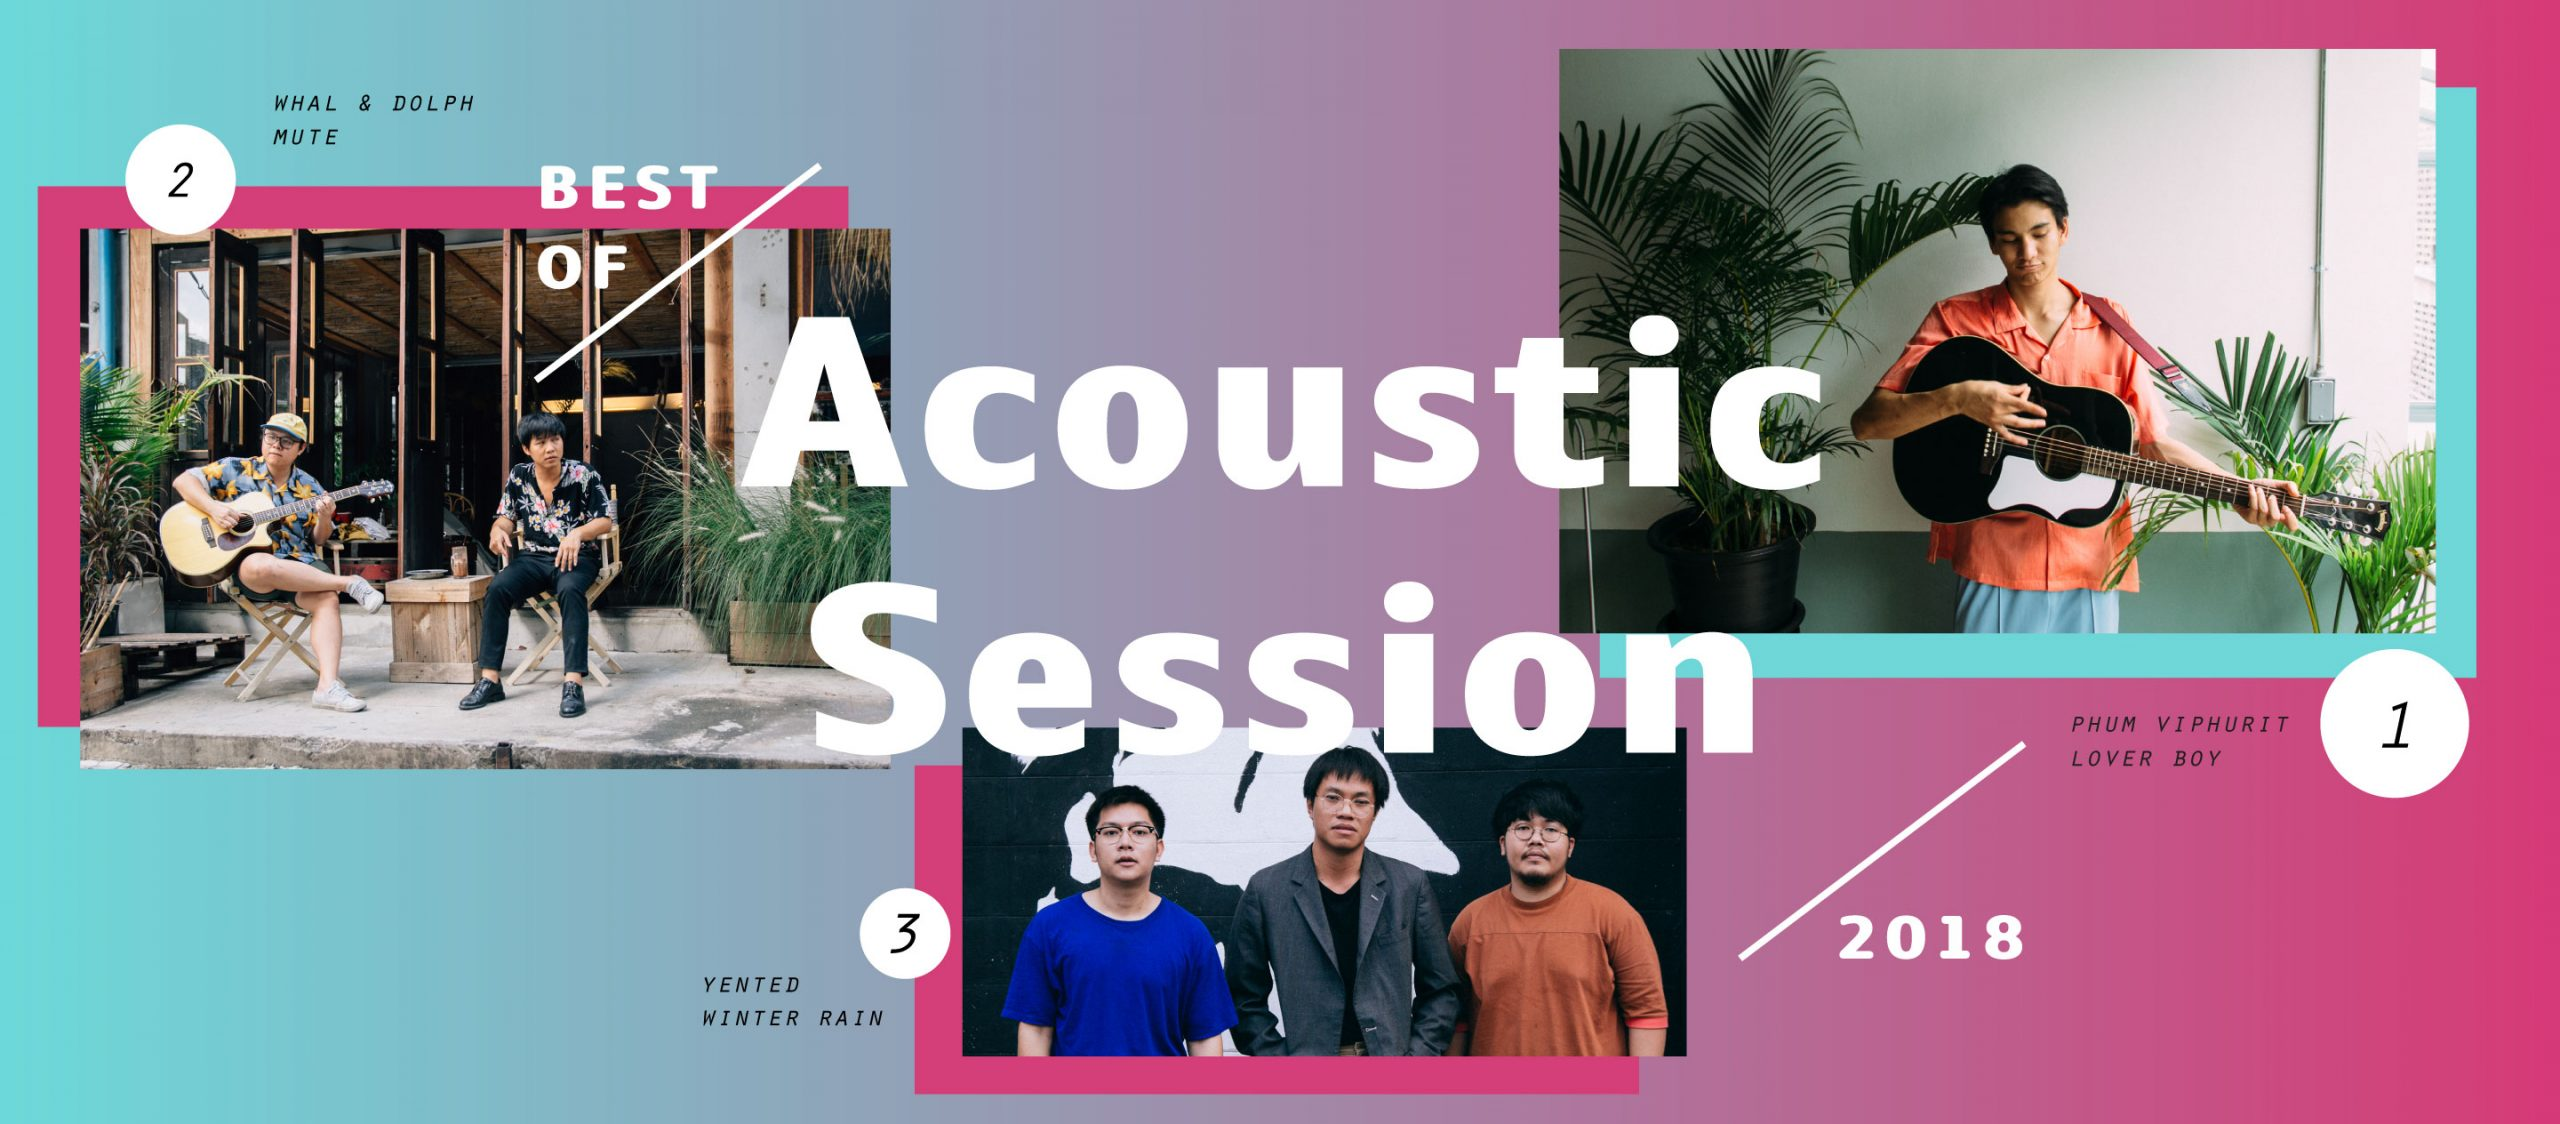 best of a day online : Acoustic Session